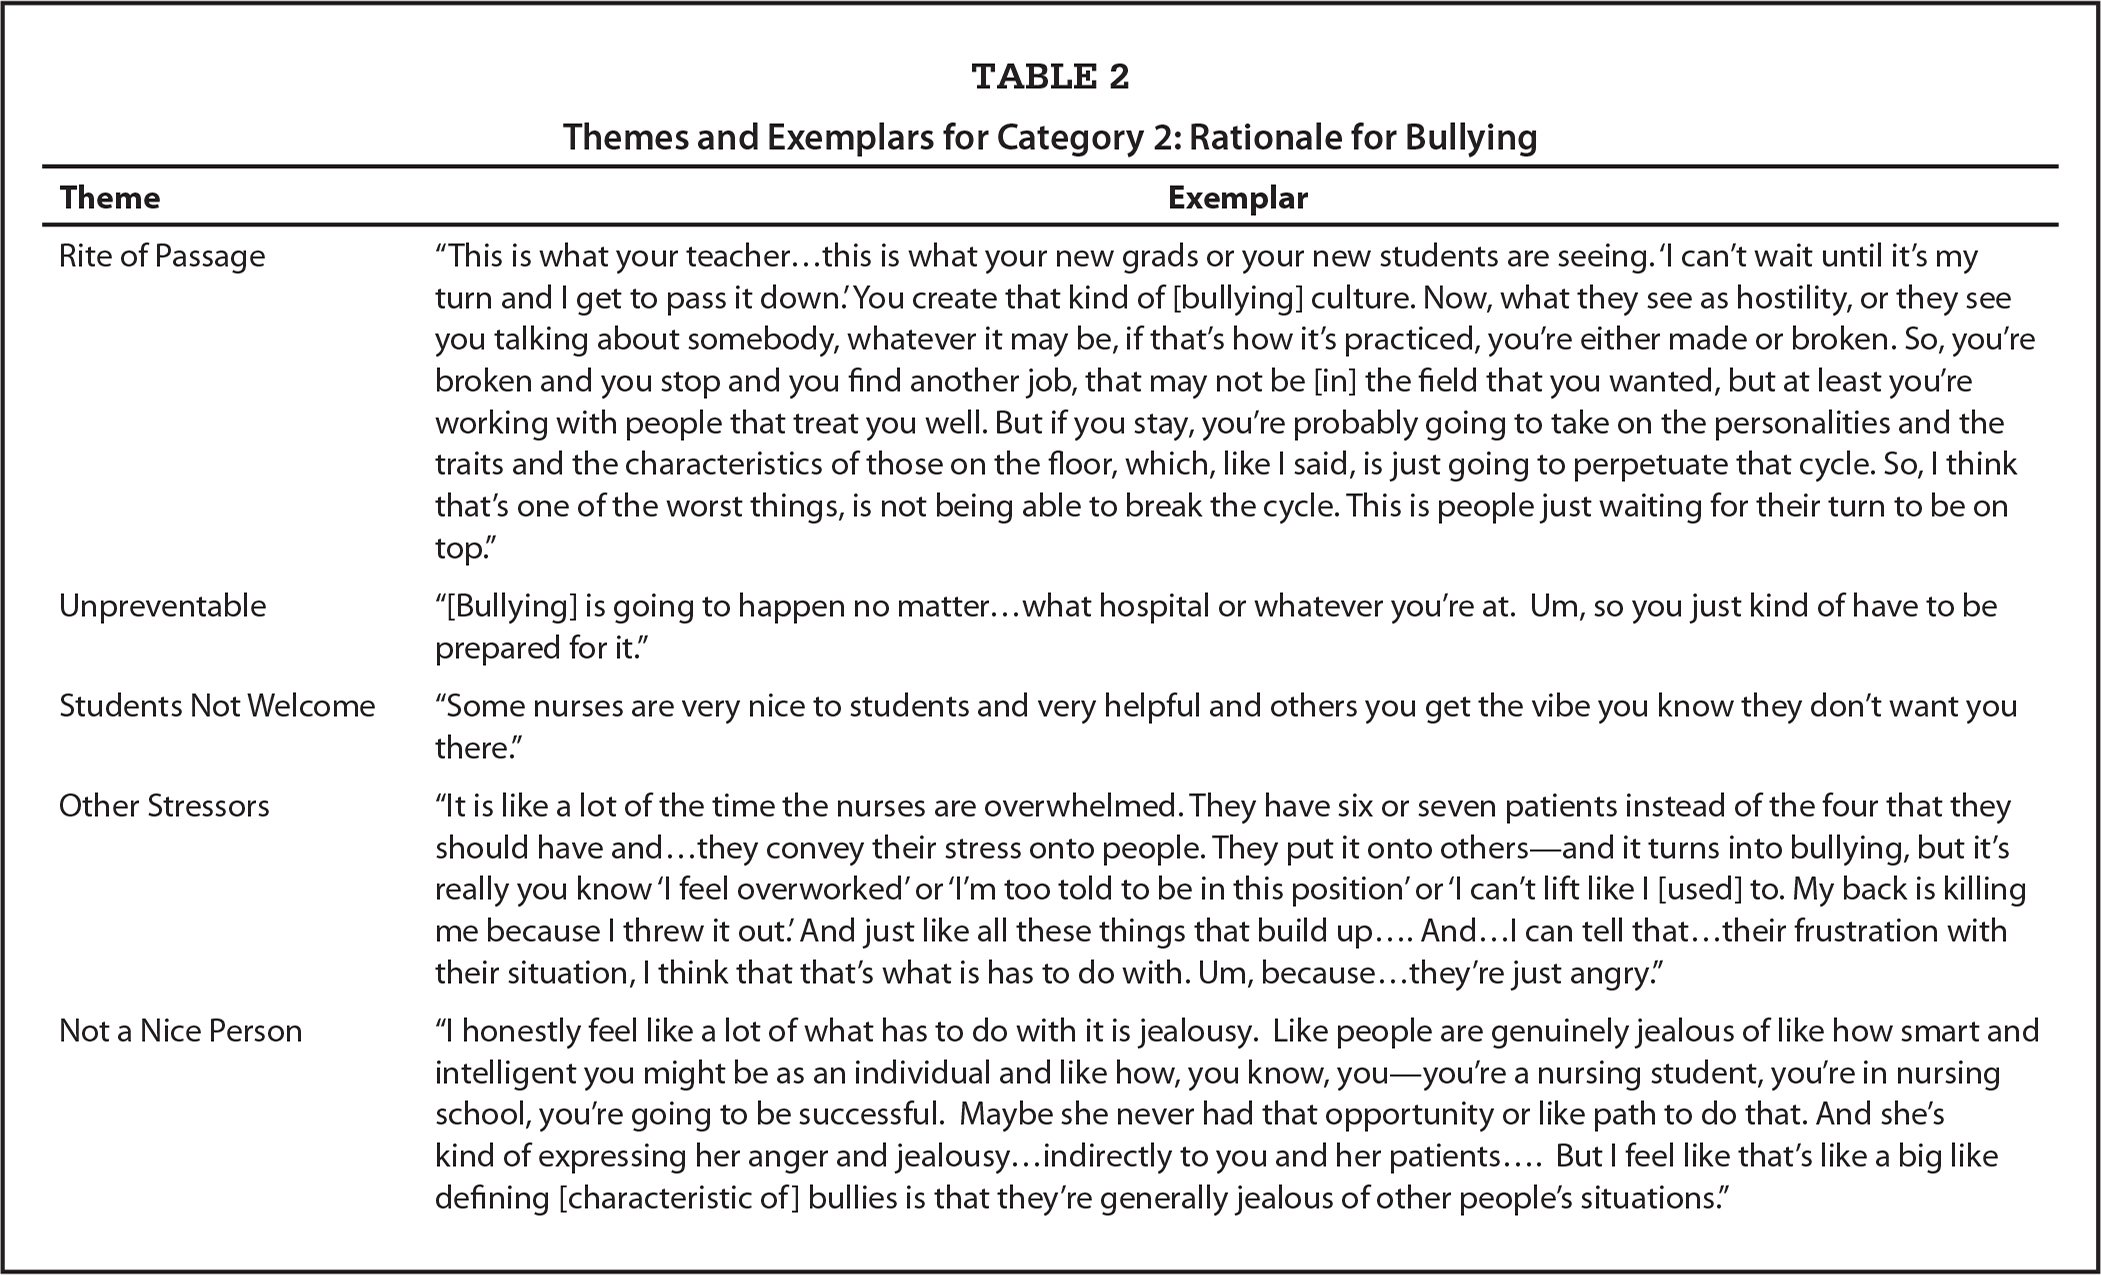 Themes and Exemplars for Category 2: Rationale for Bullying